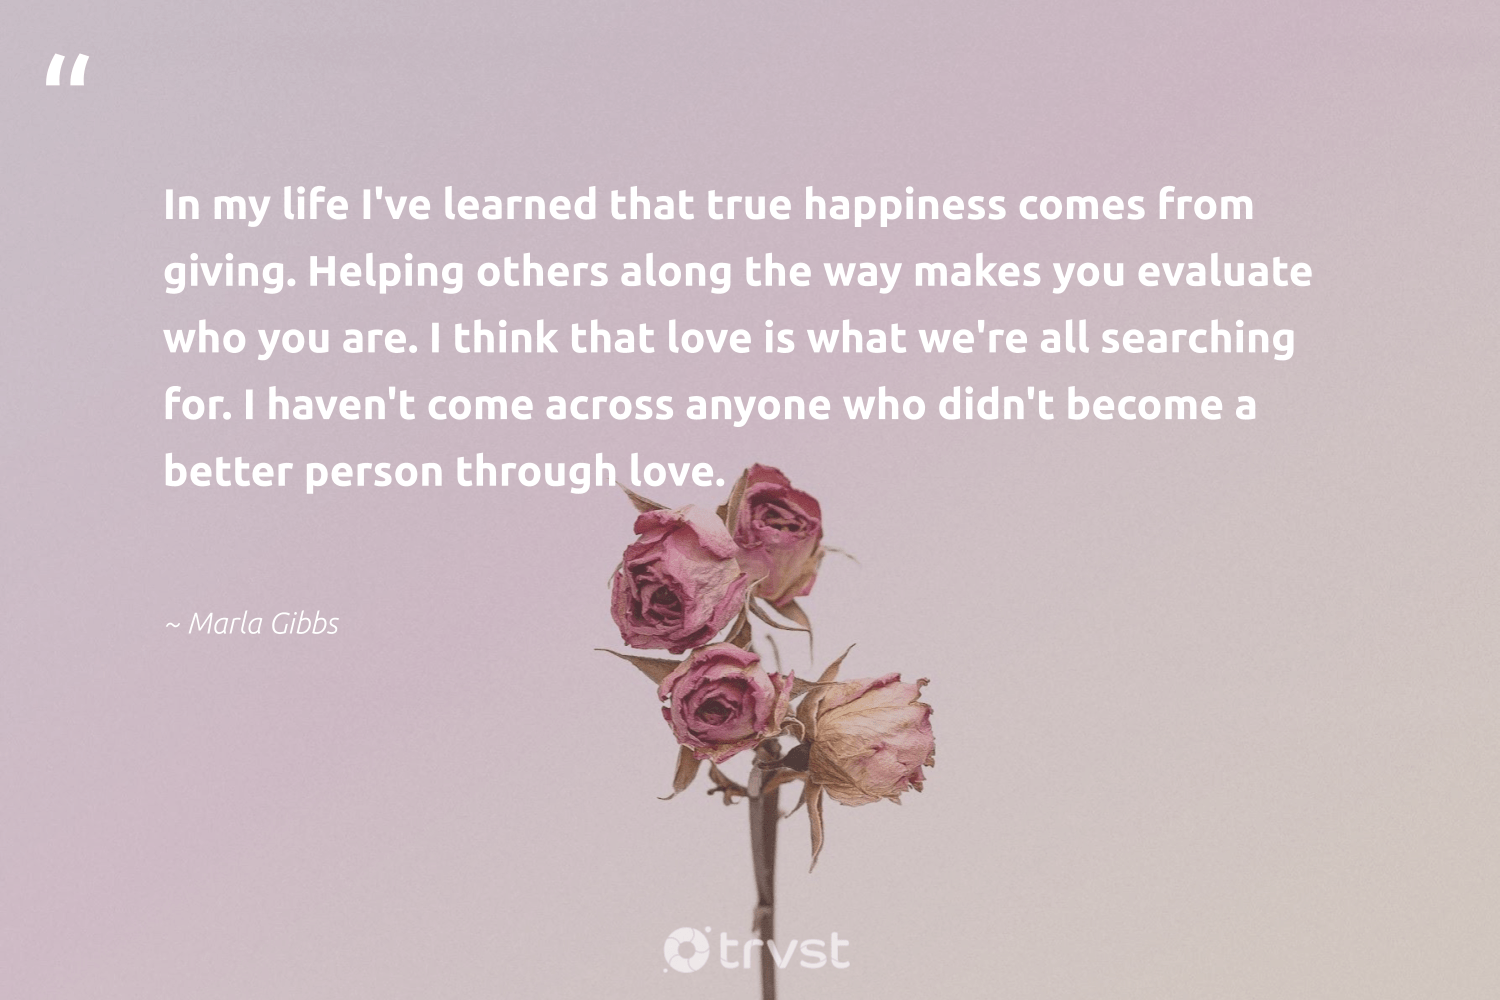 """""""In my life I've learned that true happiness comes from giving. Helping others along the way makes you evaluate who you are. I think that love is what we're all searching for. I haven't come across anyone who didn't become a better person through love.""""  - Marla Gibbs #trvst #quotes #love #happiness #nevergiveup #changetheworld #mindset #ecoconscious #health #gogreen #begreat #impact"""